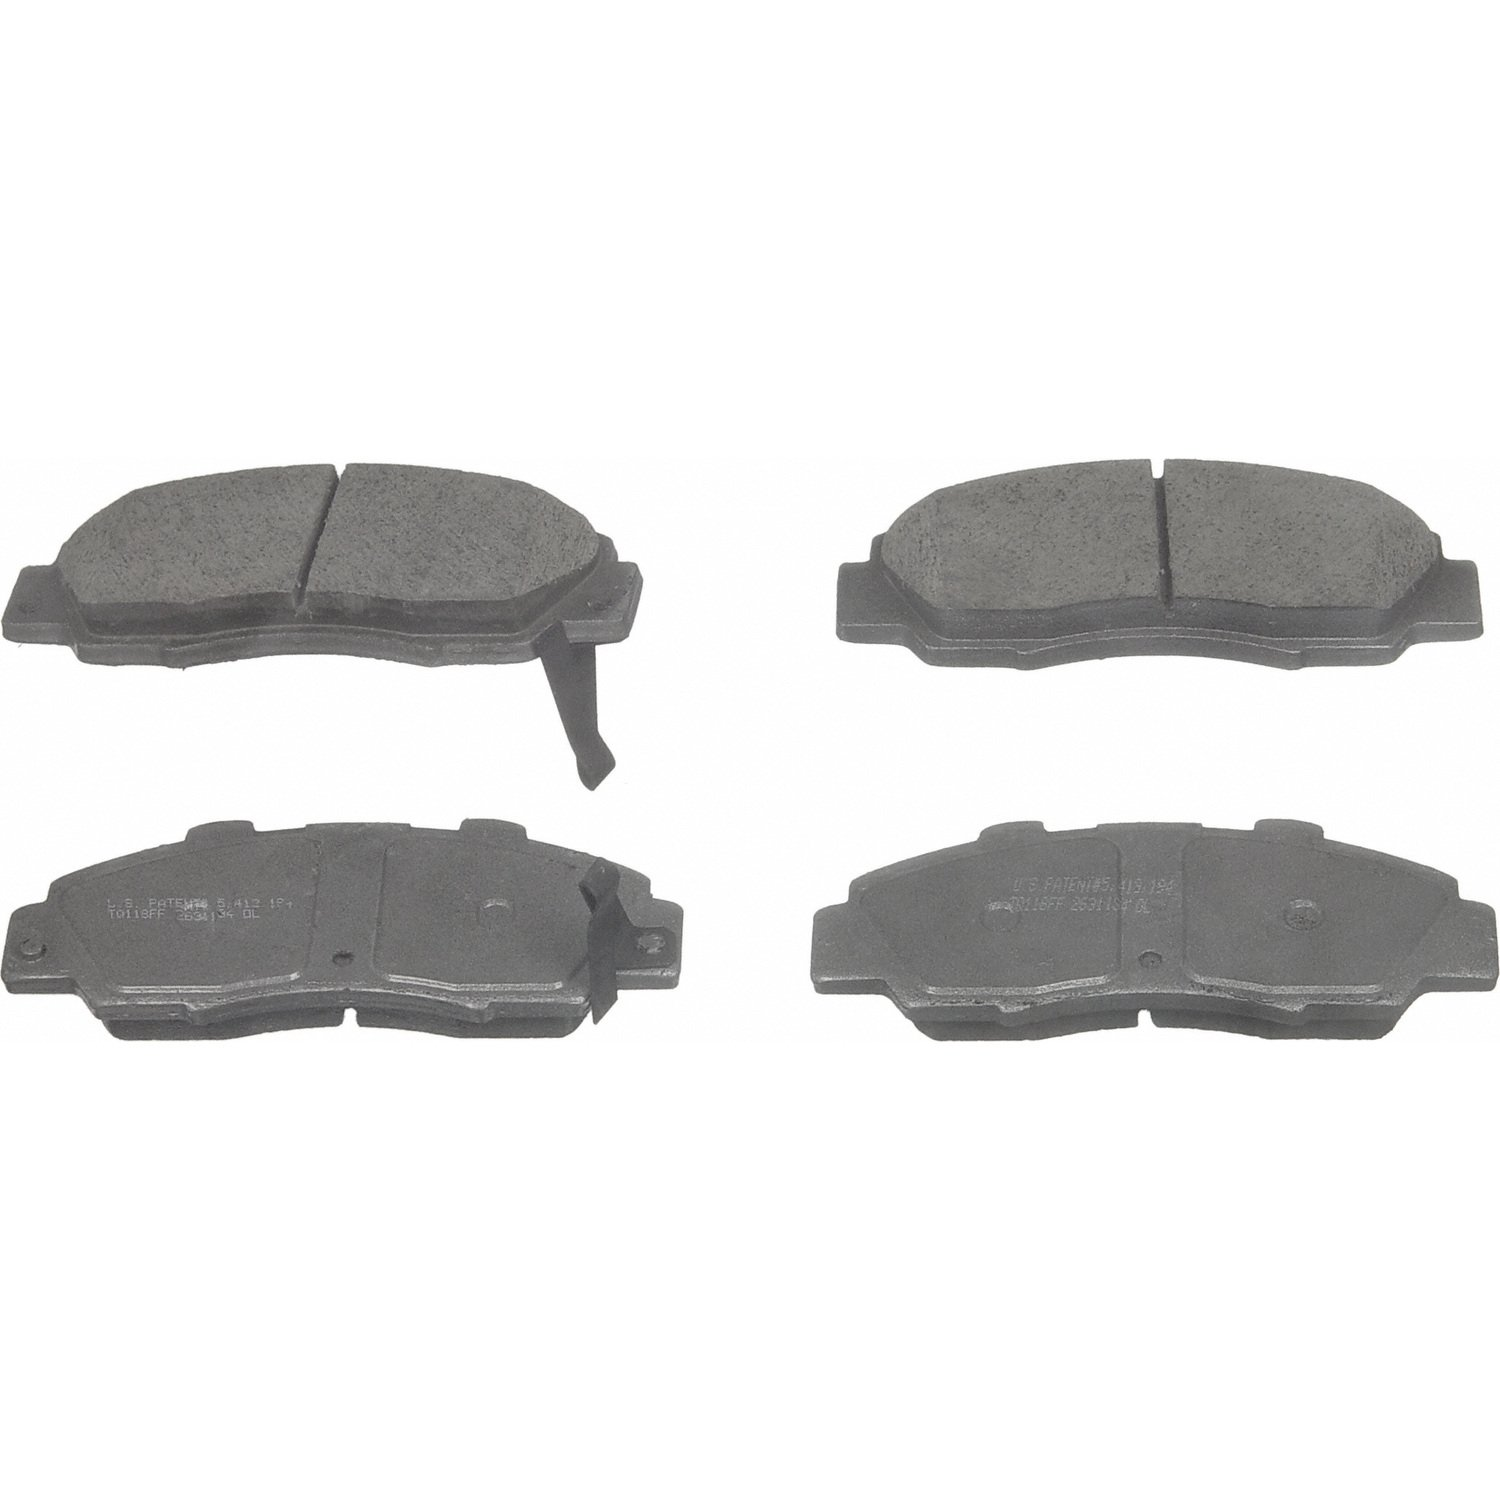 Disc Brake Pad Set-QuickStop Disc Brake Pad Front Wagner fits 05-12 Acura RL